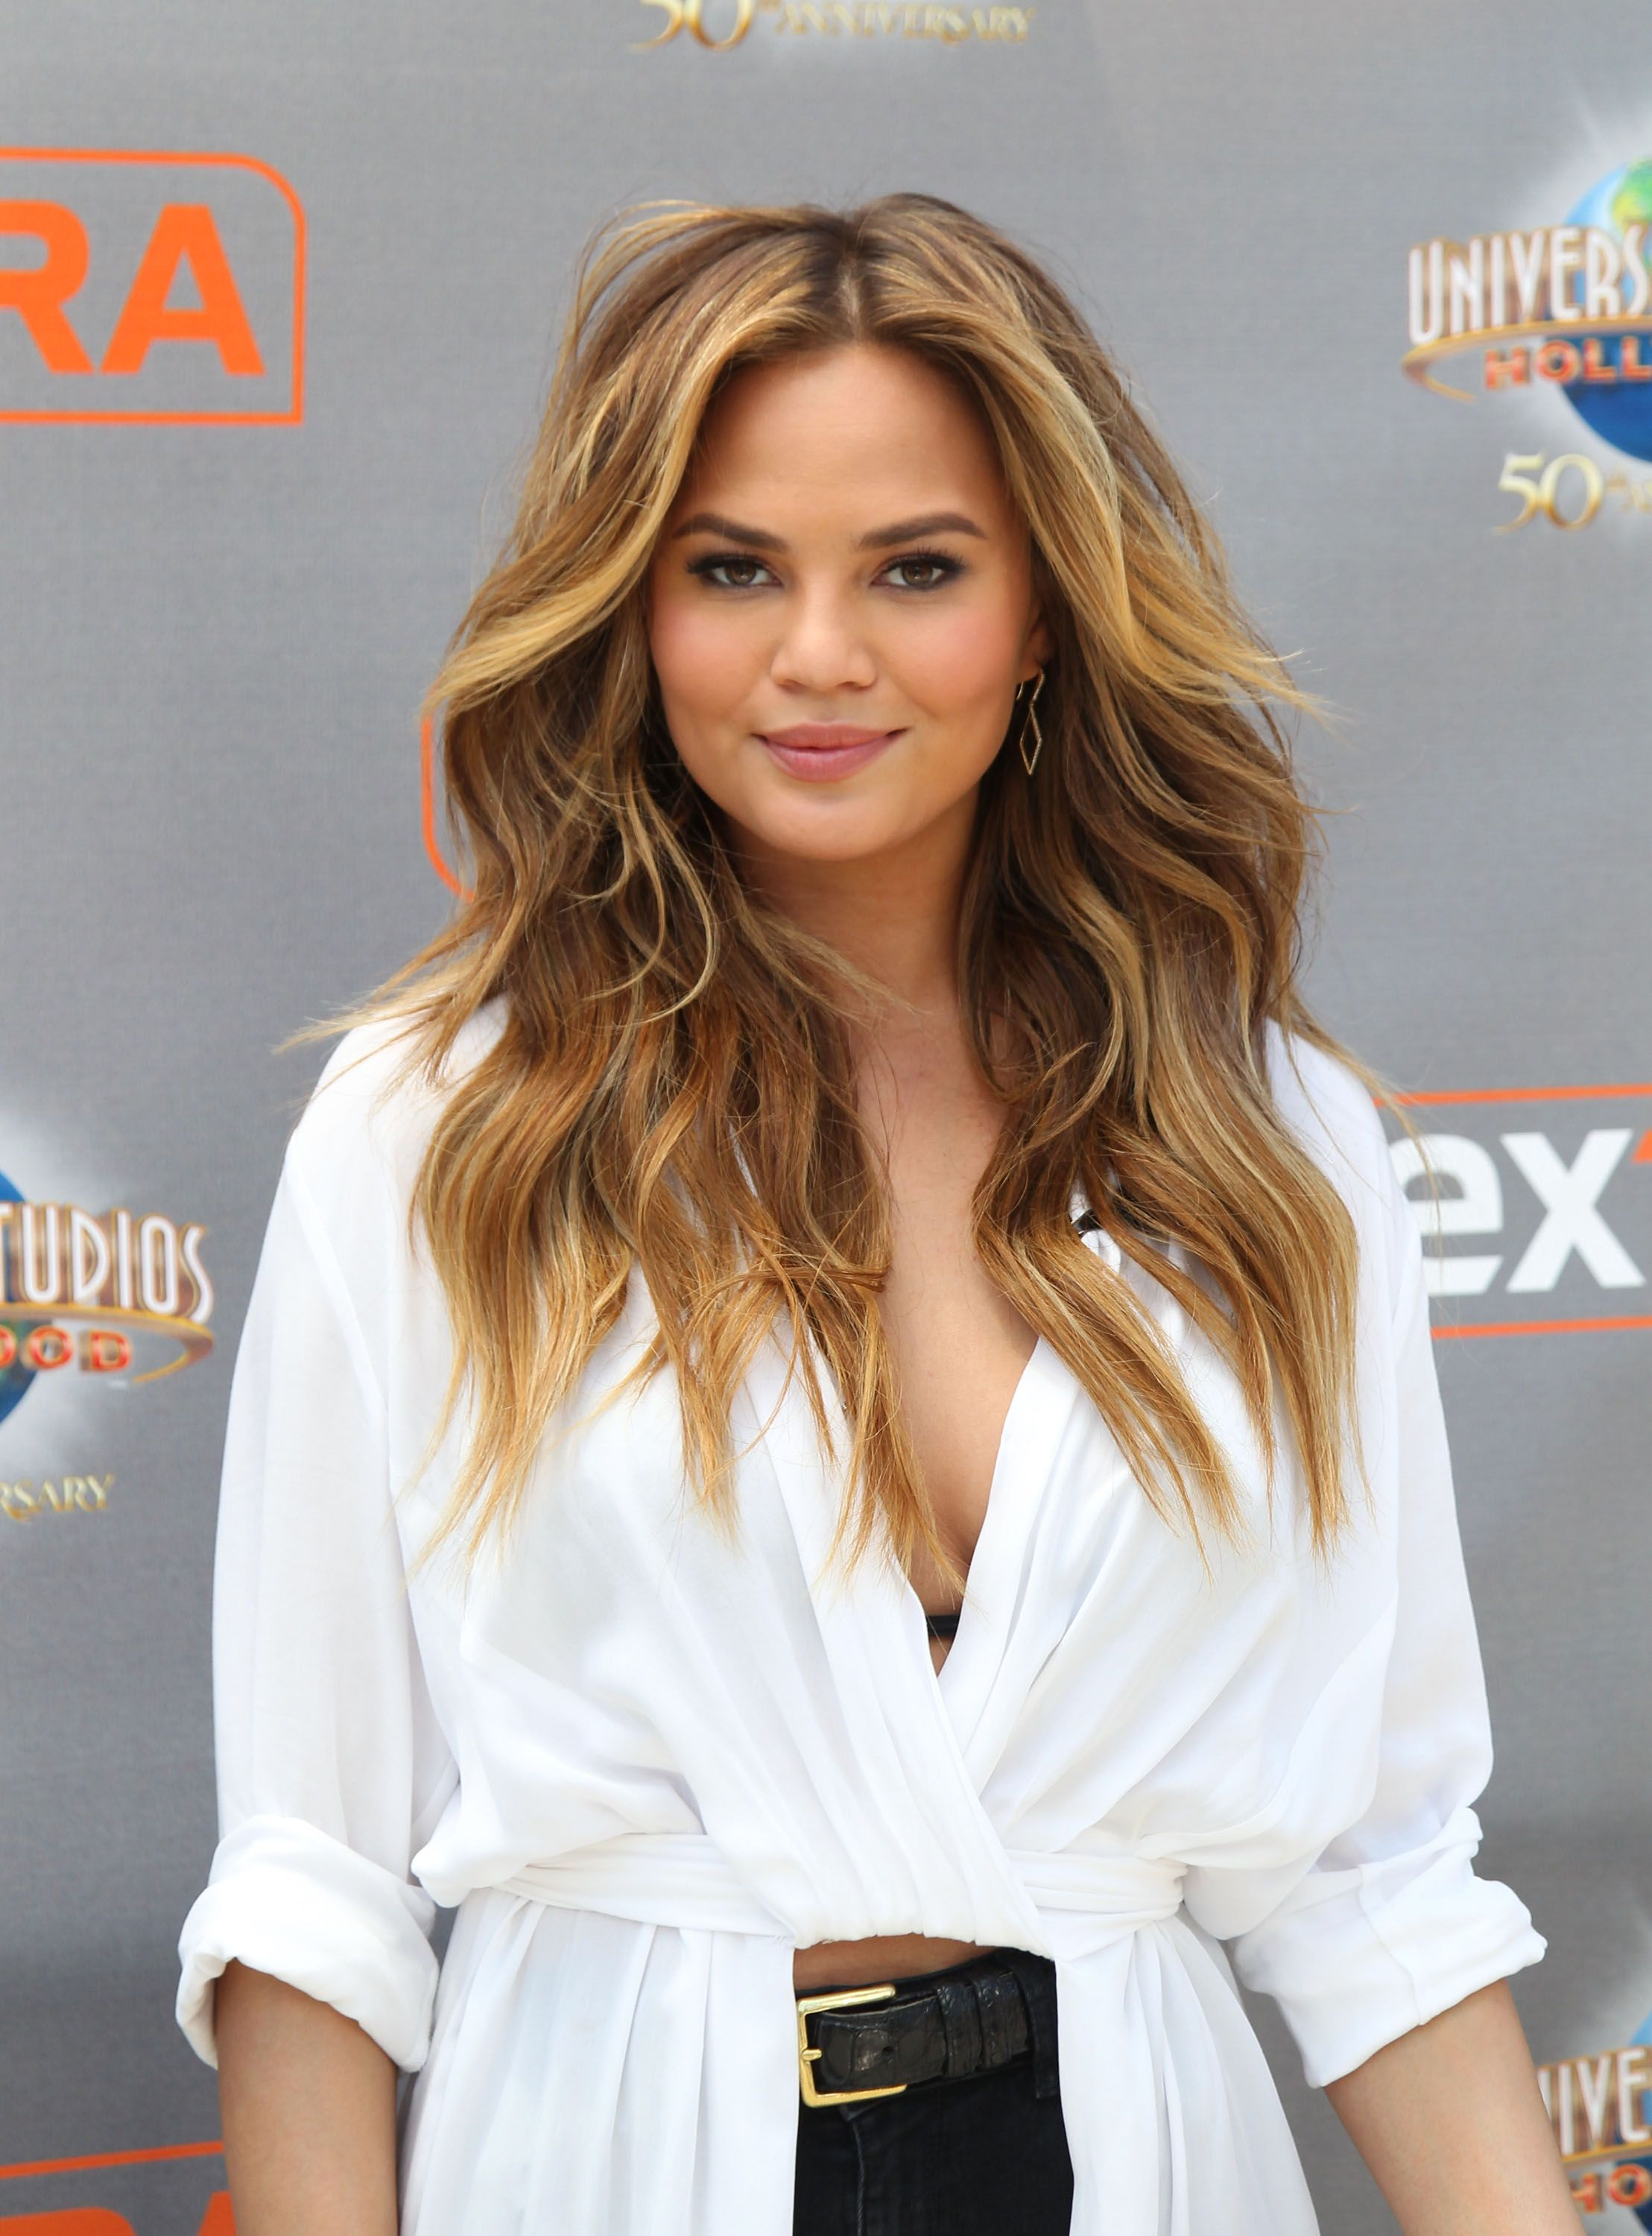 """Chrissy Teigen goes to """"Extra"""" at Universal Studios Hollywood on May 20, 2015 in Universal City, California. 